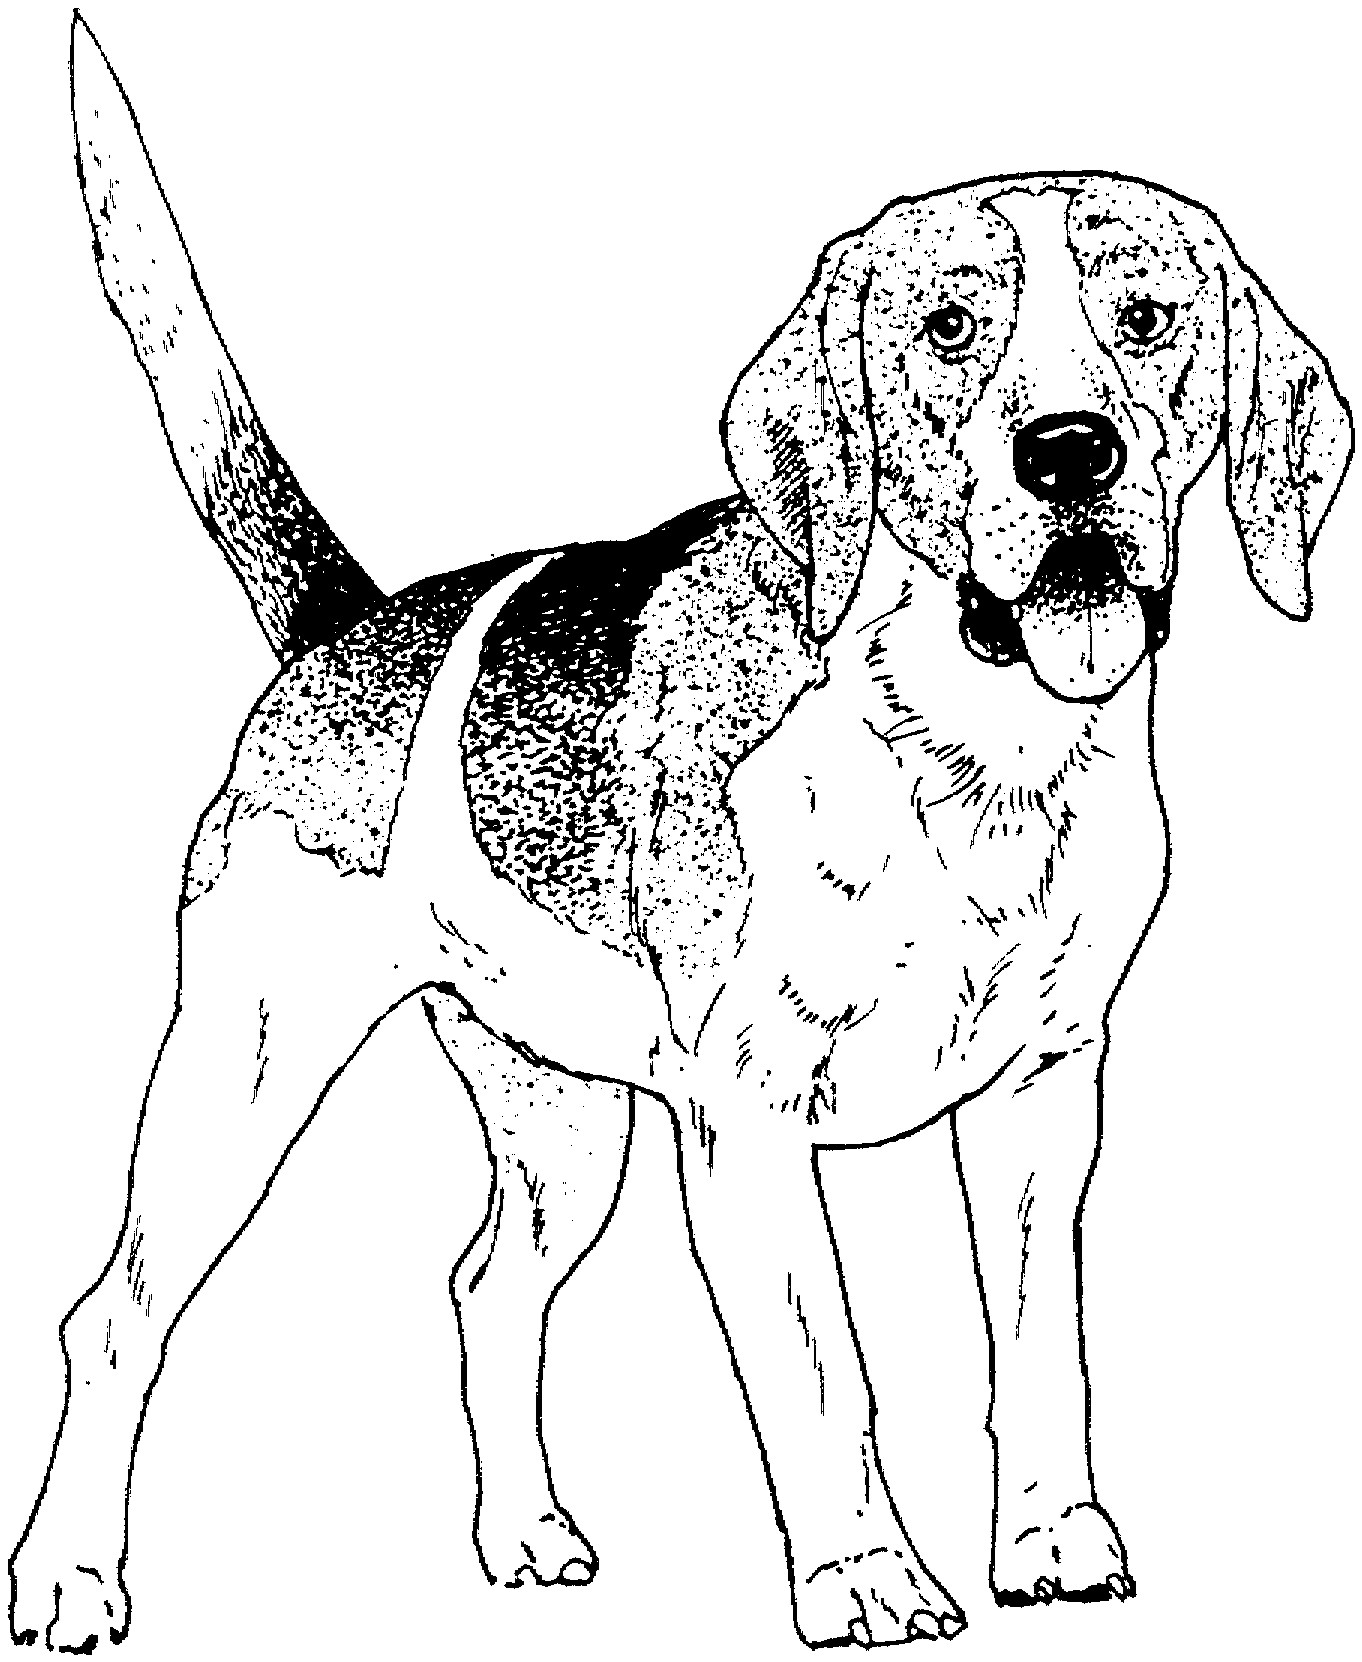 1362x1662 Bloodhound Dog Coloring Pages To Print Coloring For Kids